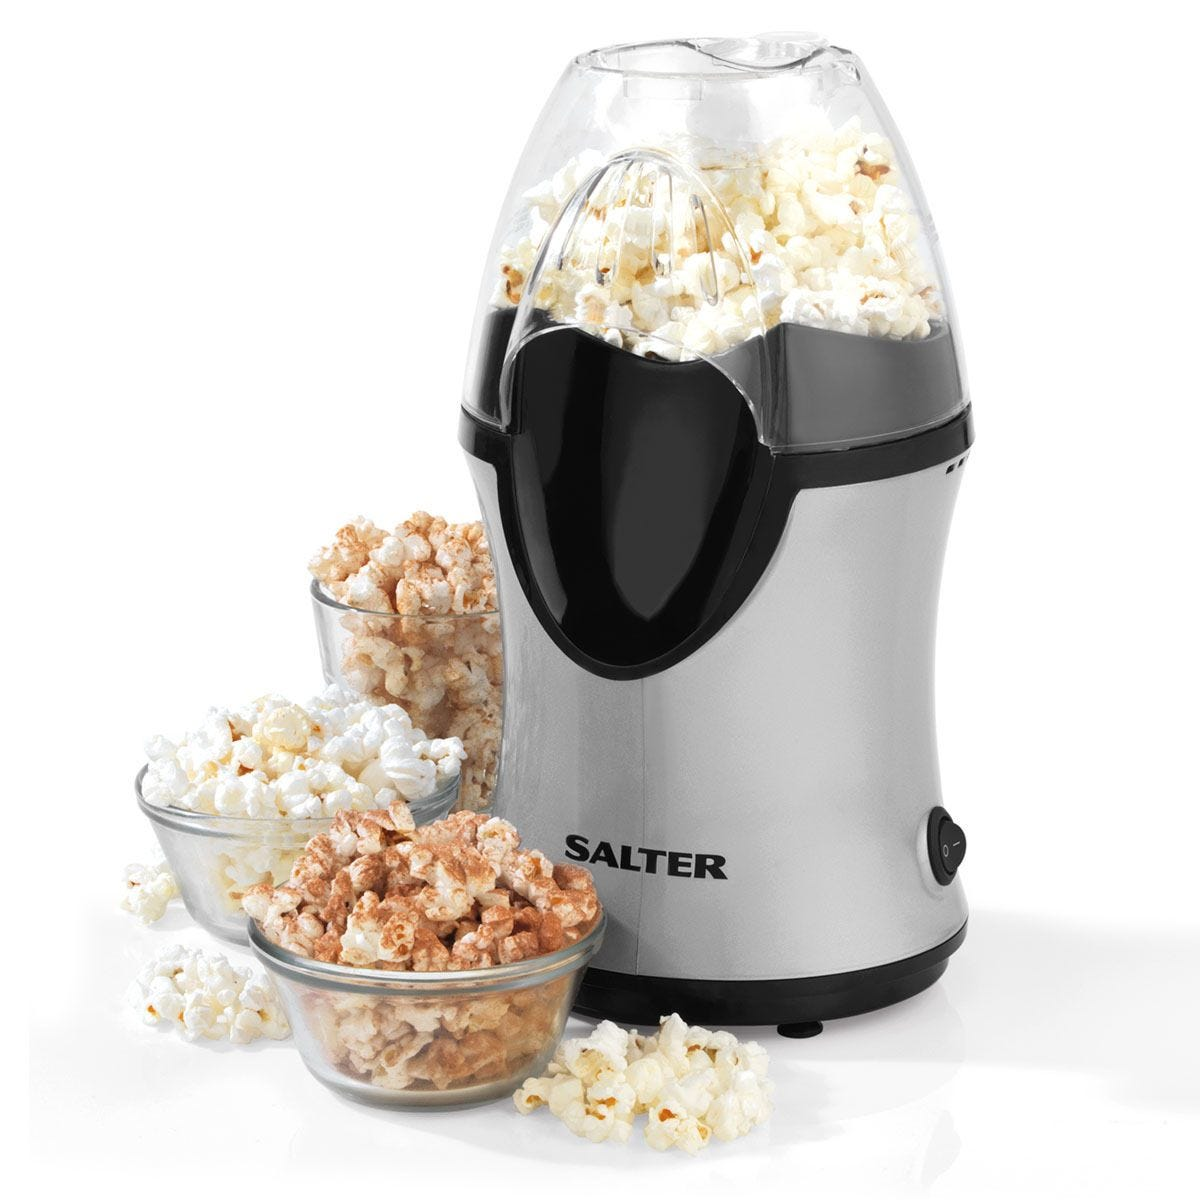 Salter 1200W Healthy Electric Hot Air Popcorn Maker - Grey